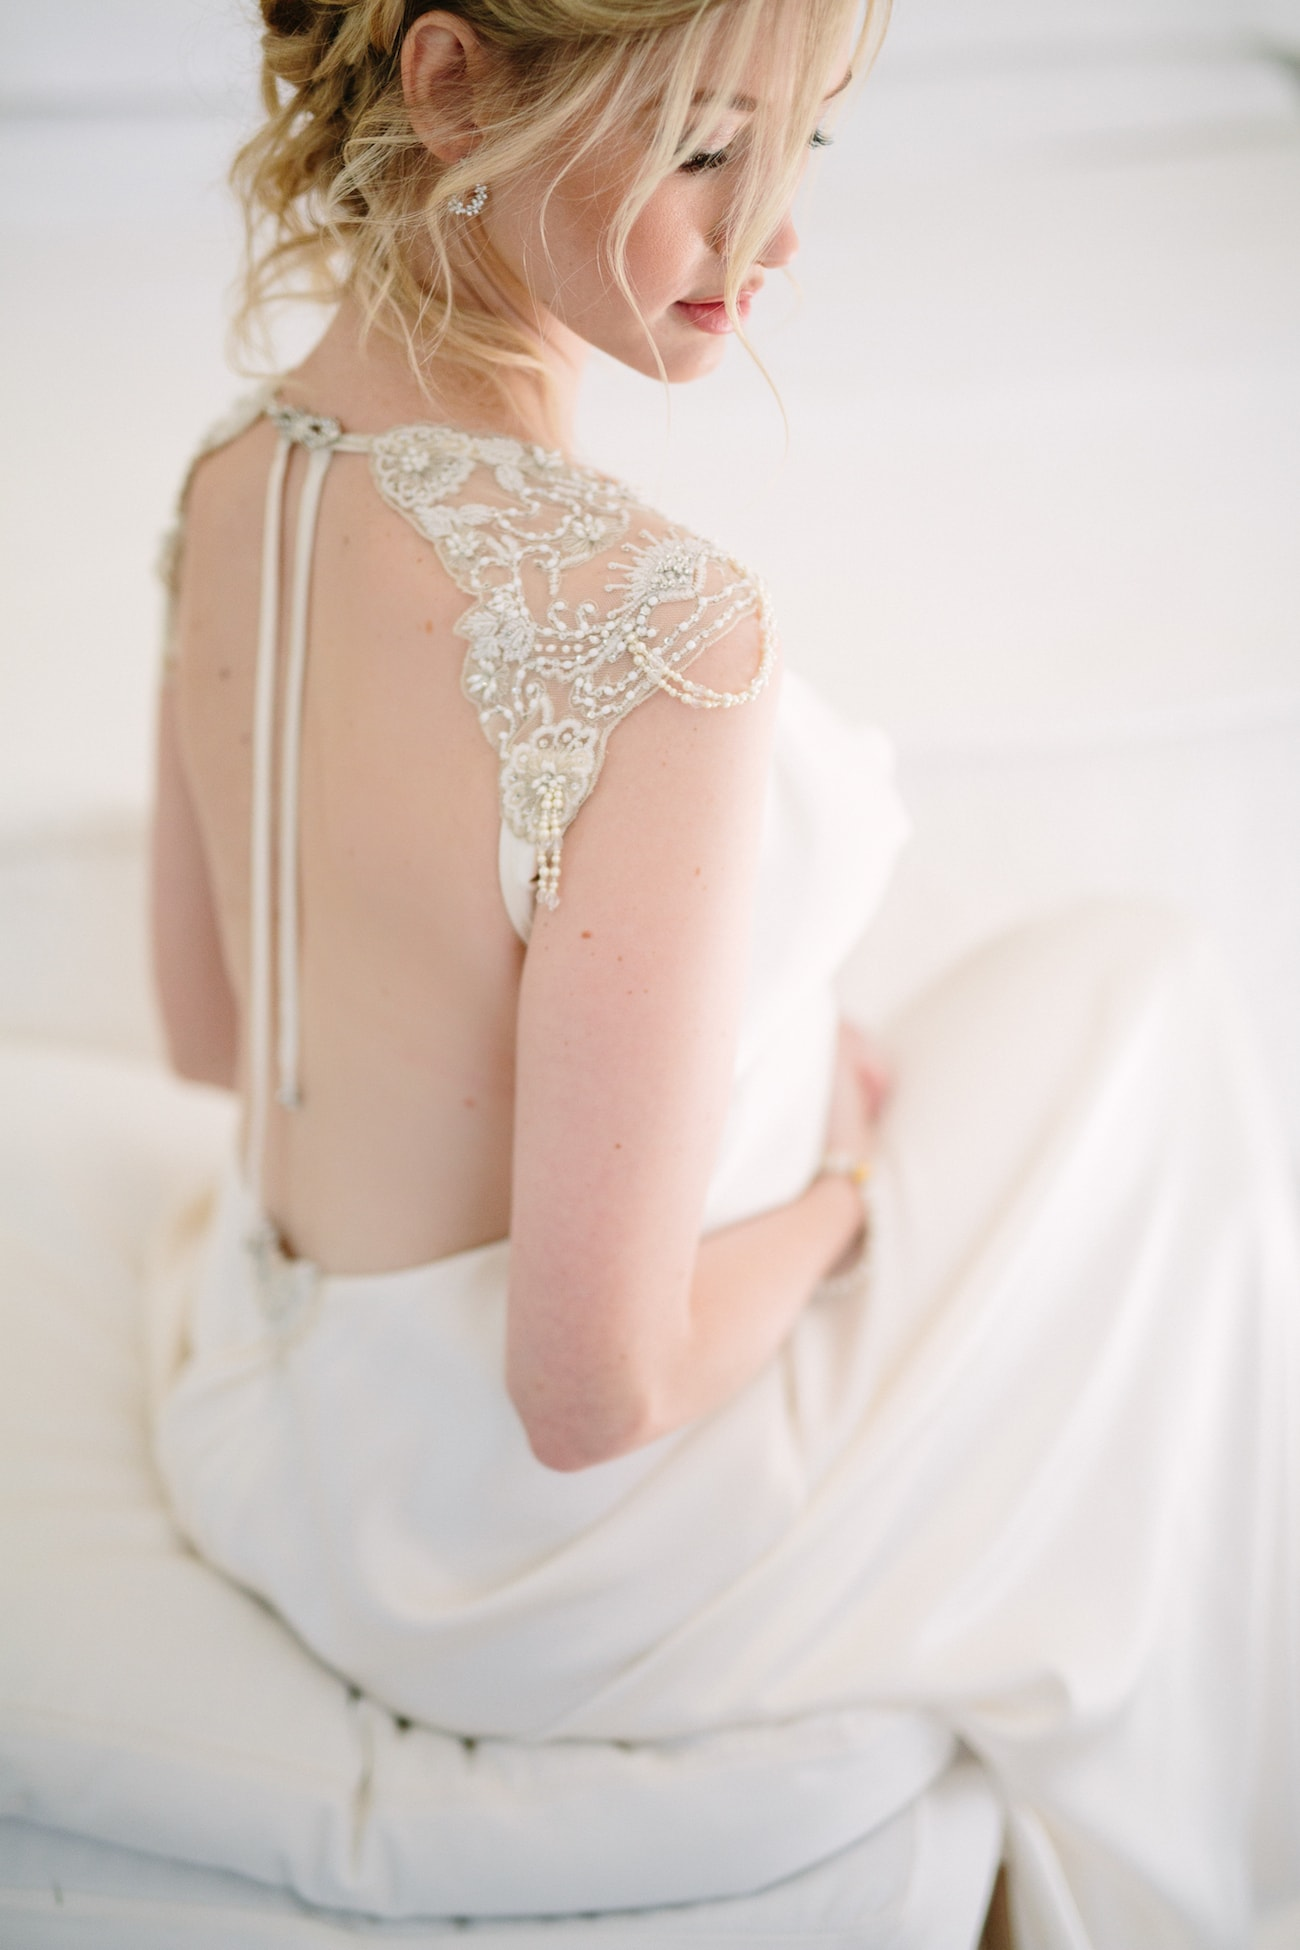 Backless Gwendolynne Wedding Dress | Image: Tasha Seccombe